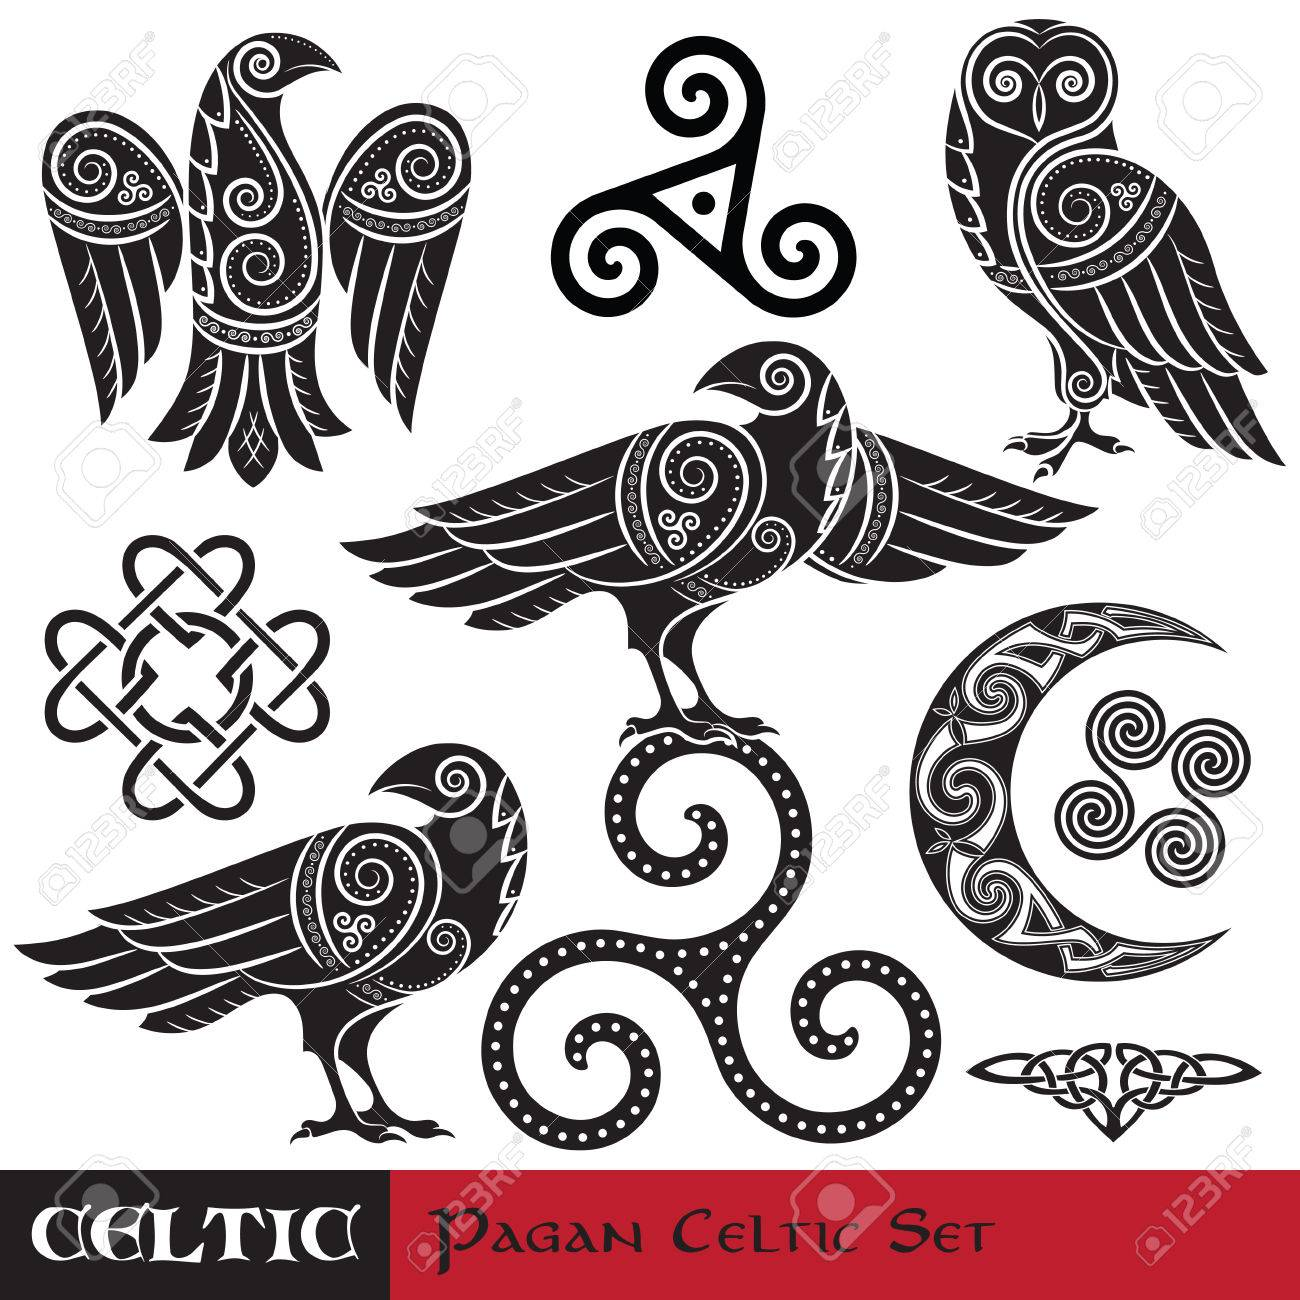 72 Celtic Owl Stock Vector Illustration And Royalty Free Celtic Owl ...